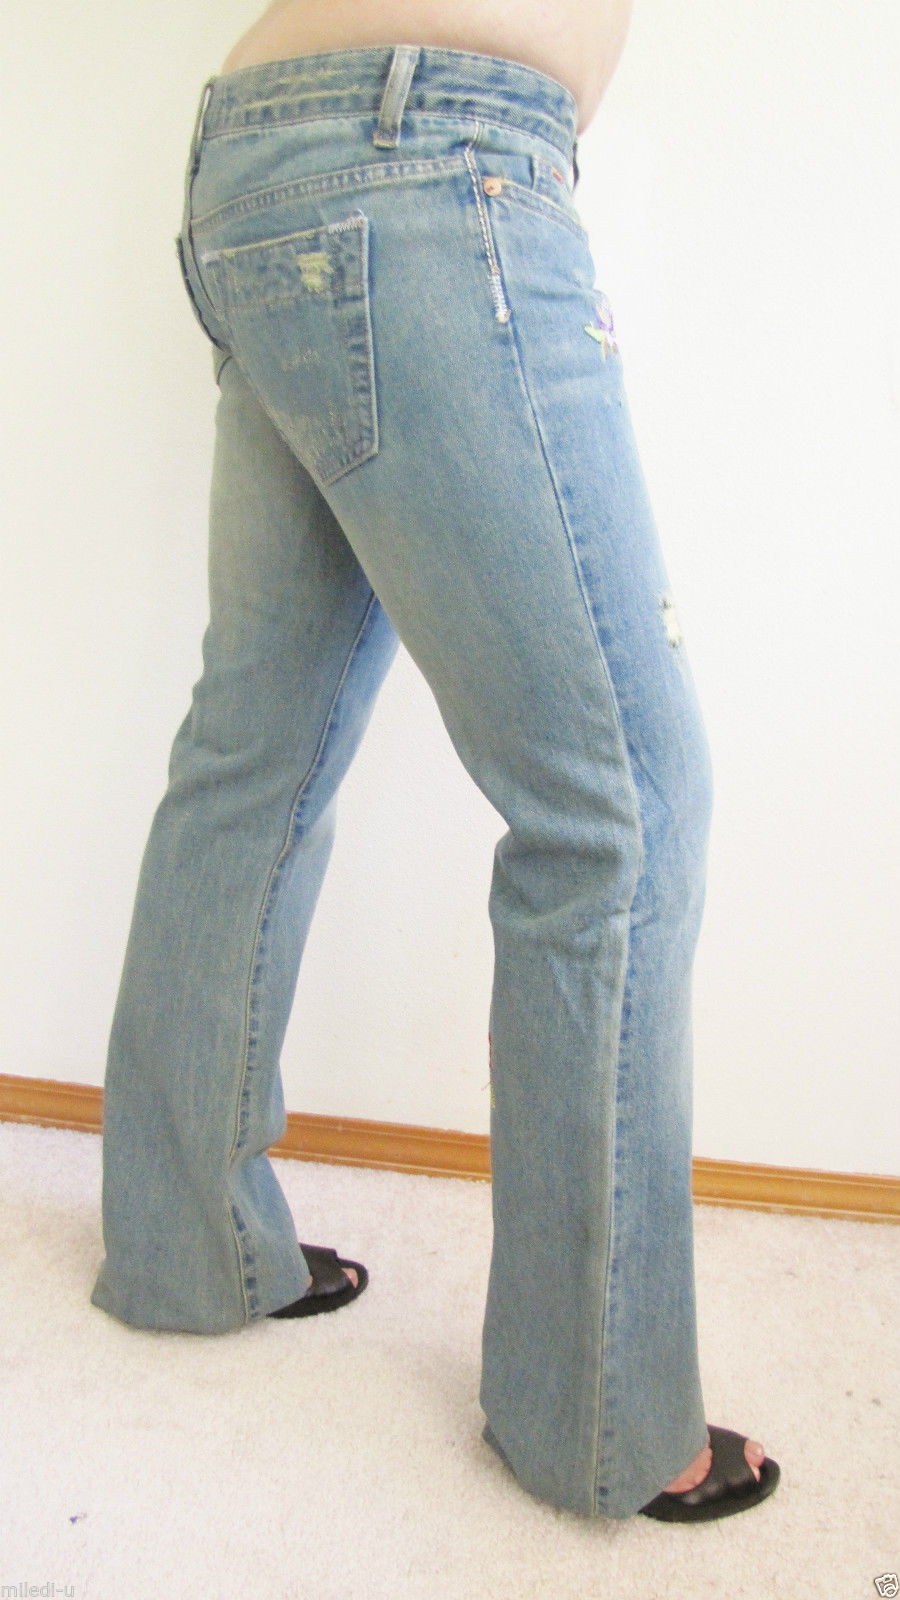 NEW JOE'S NAVENS VINTAGE DISTRESSED BOOTCUT DESIGNER DENIM JEANS, 25,EMBROIDERY